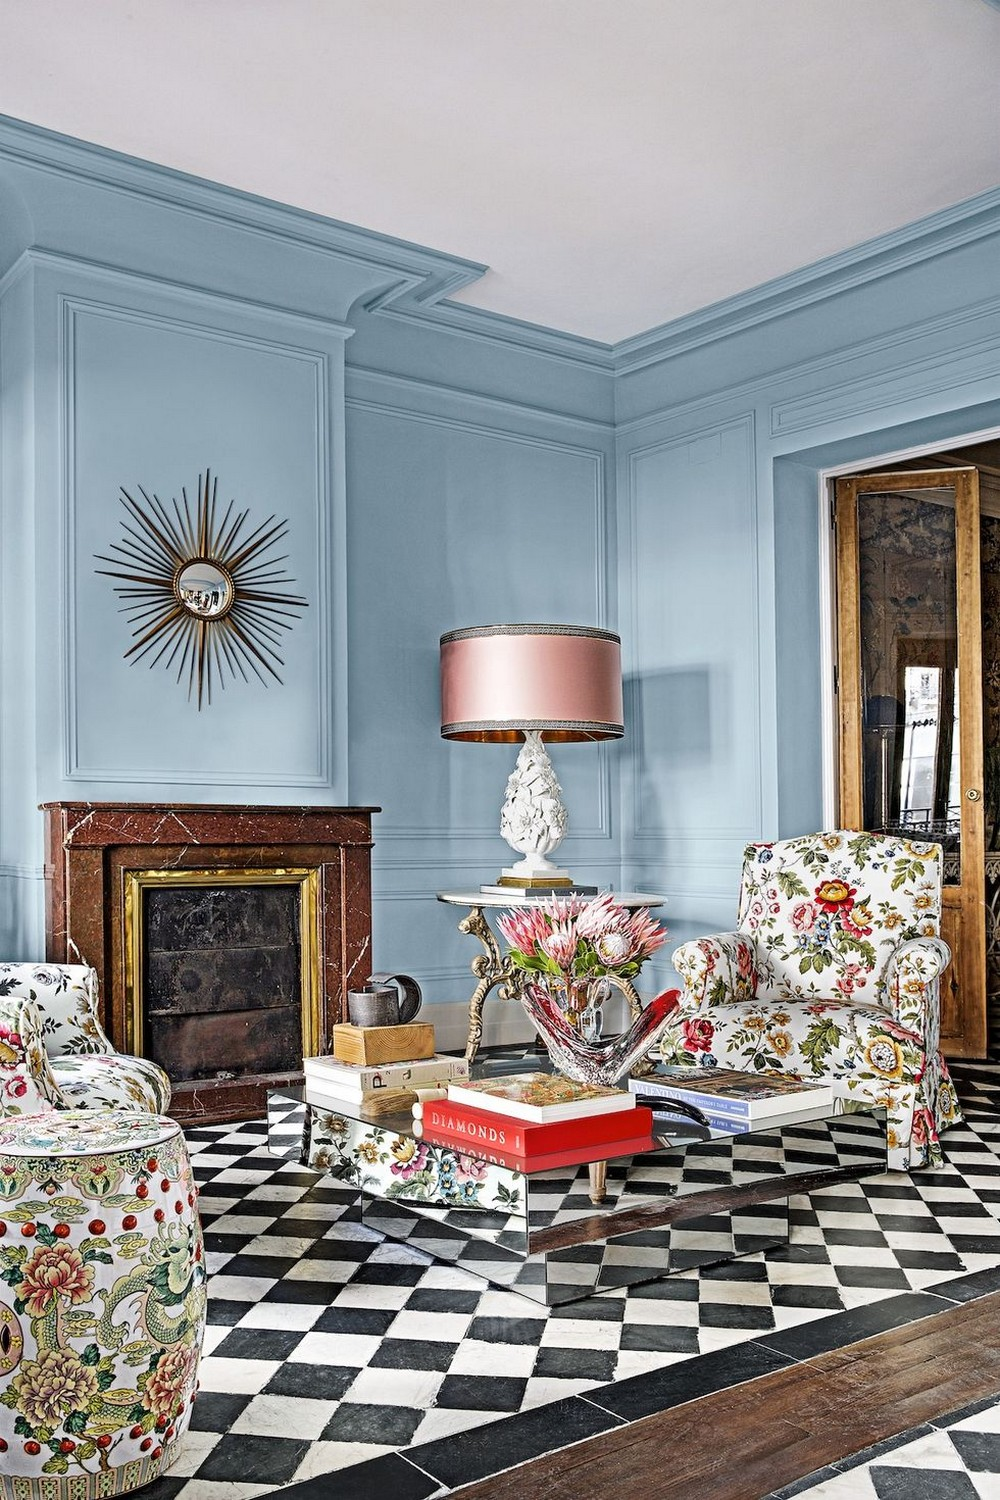 Bohemian Design Add a More Eclectic Touch to Your Home Interiors 1 bohemian design Bohemian Design: Add a More Eclectic Touch to Your Home Interiors Bohemian Design Add a More Eclectic Touch to Your Home Interiors 1